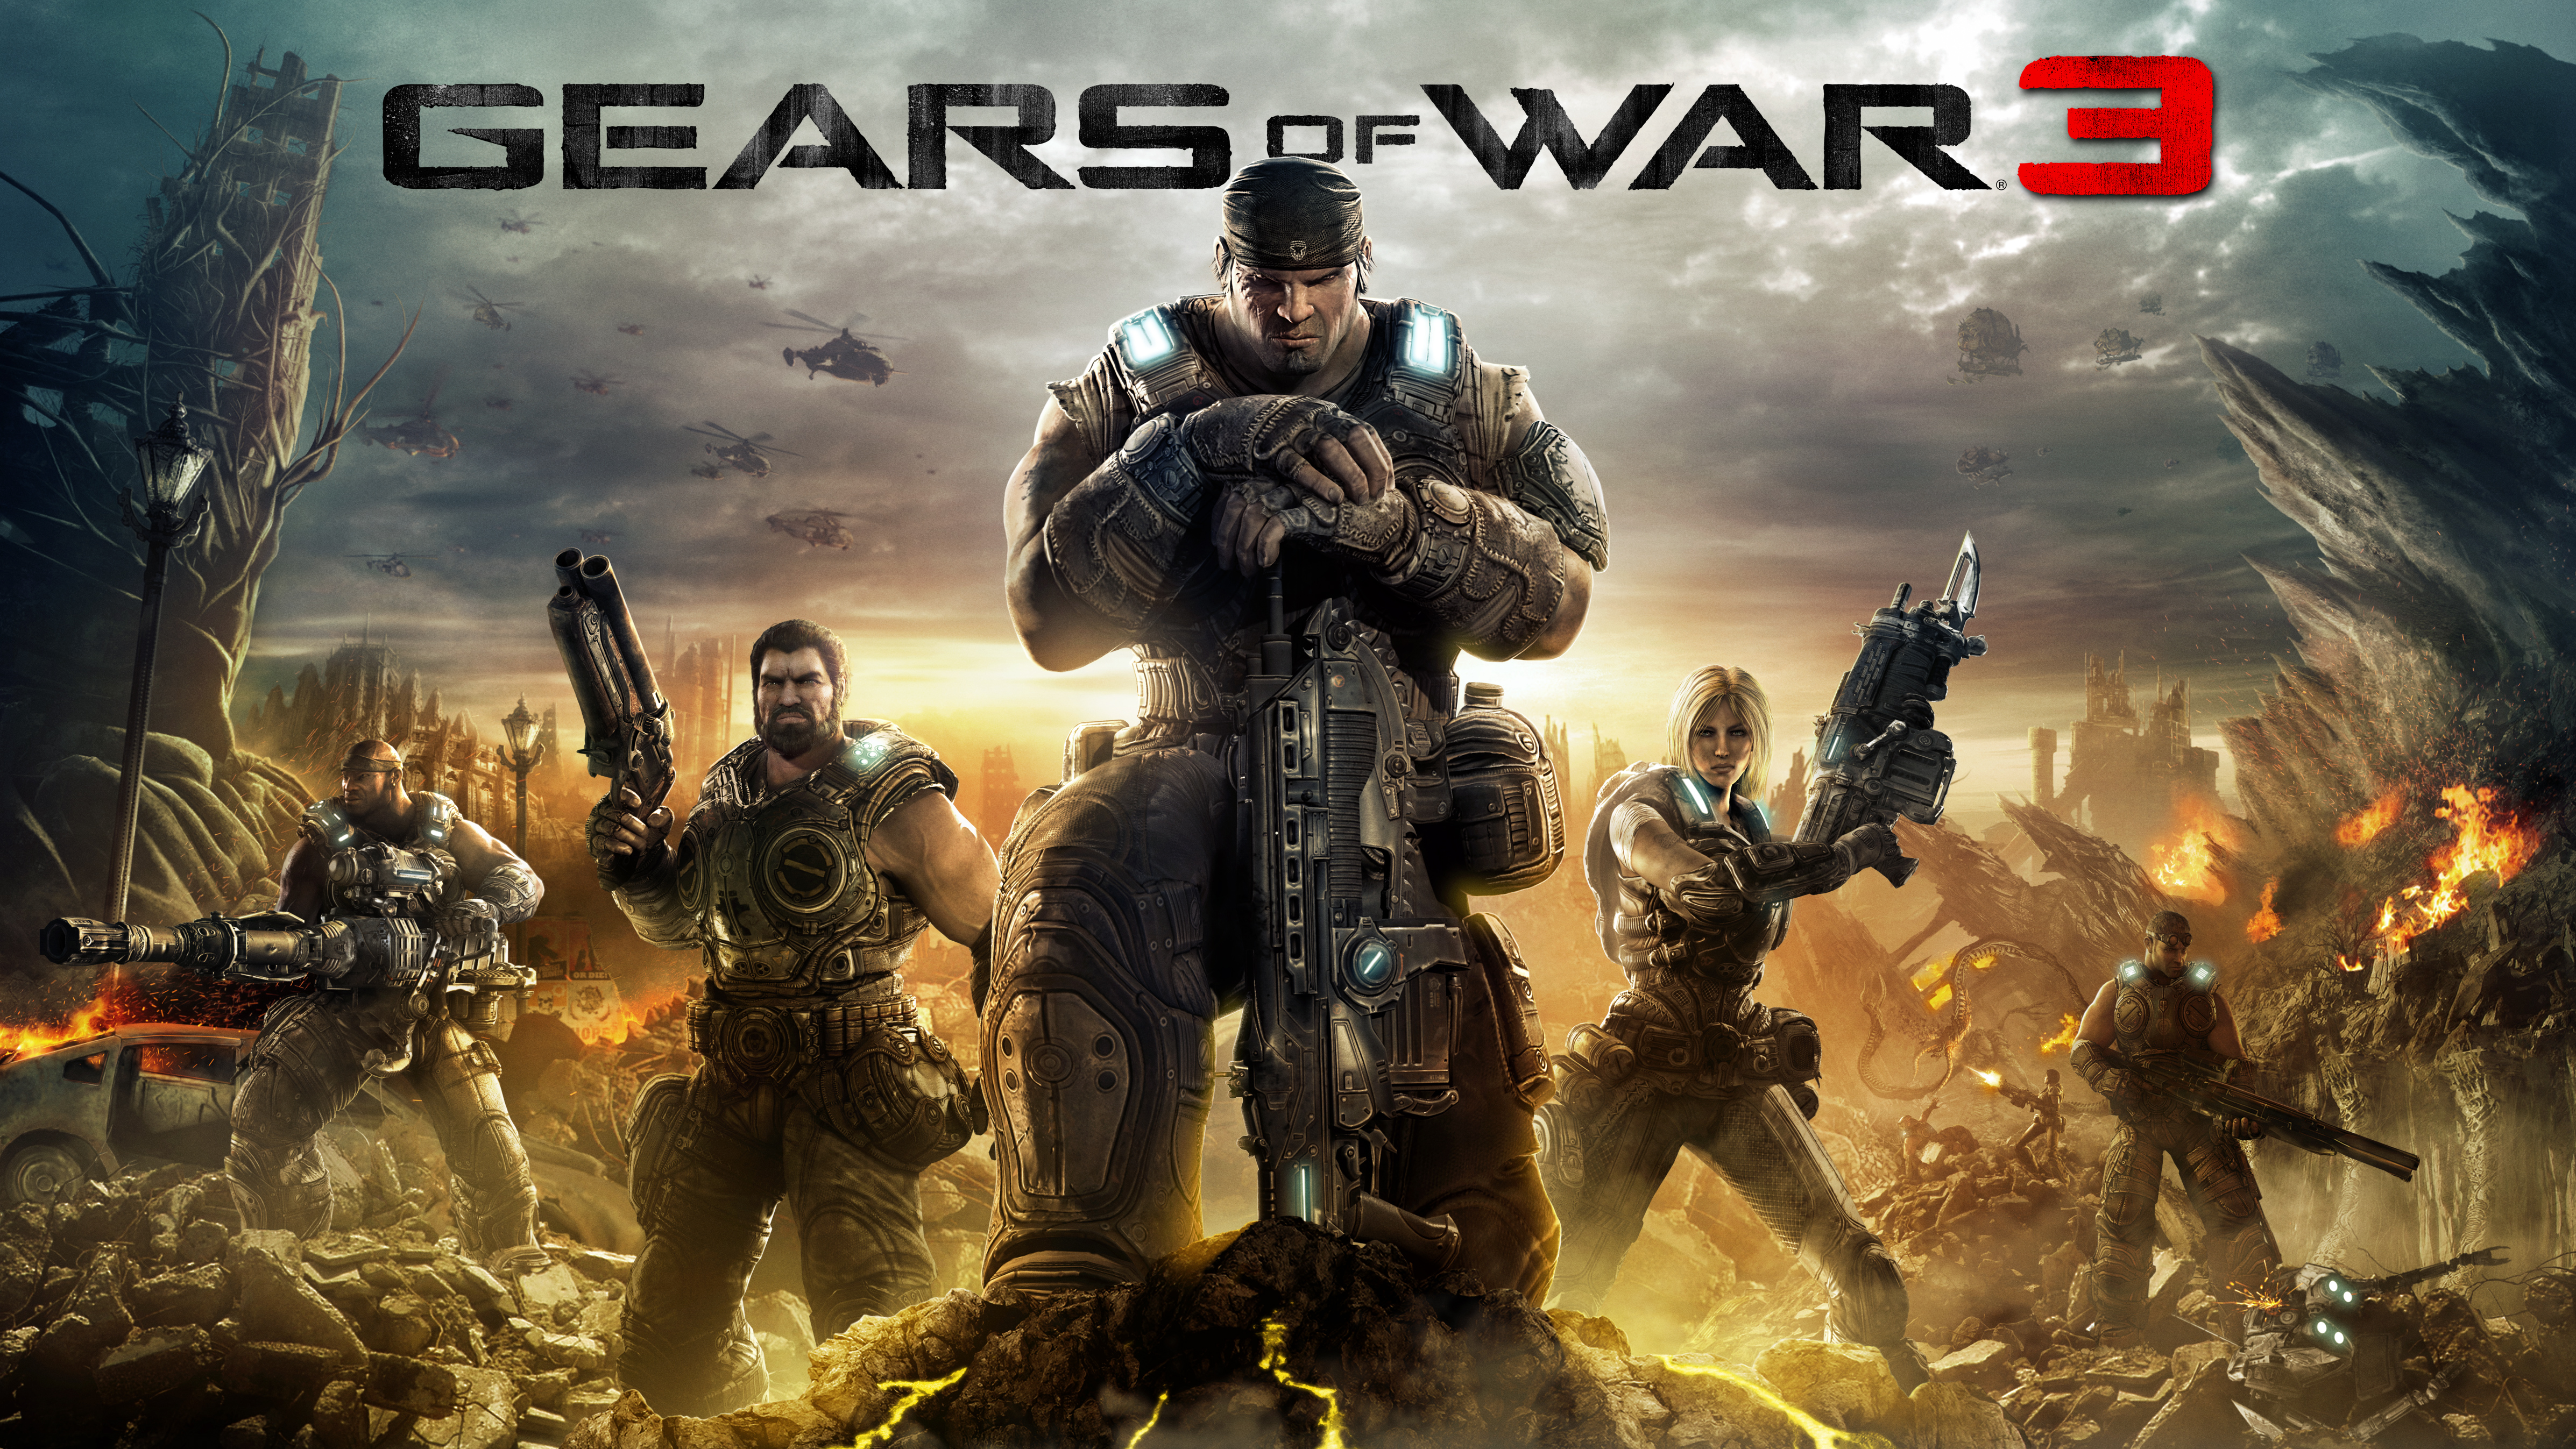 Gears of war 2 free download-full crack for pc.